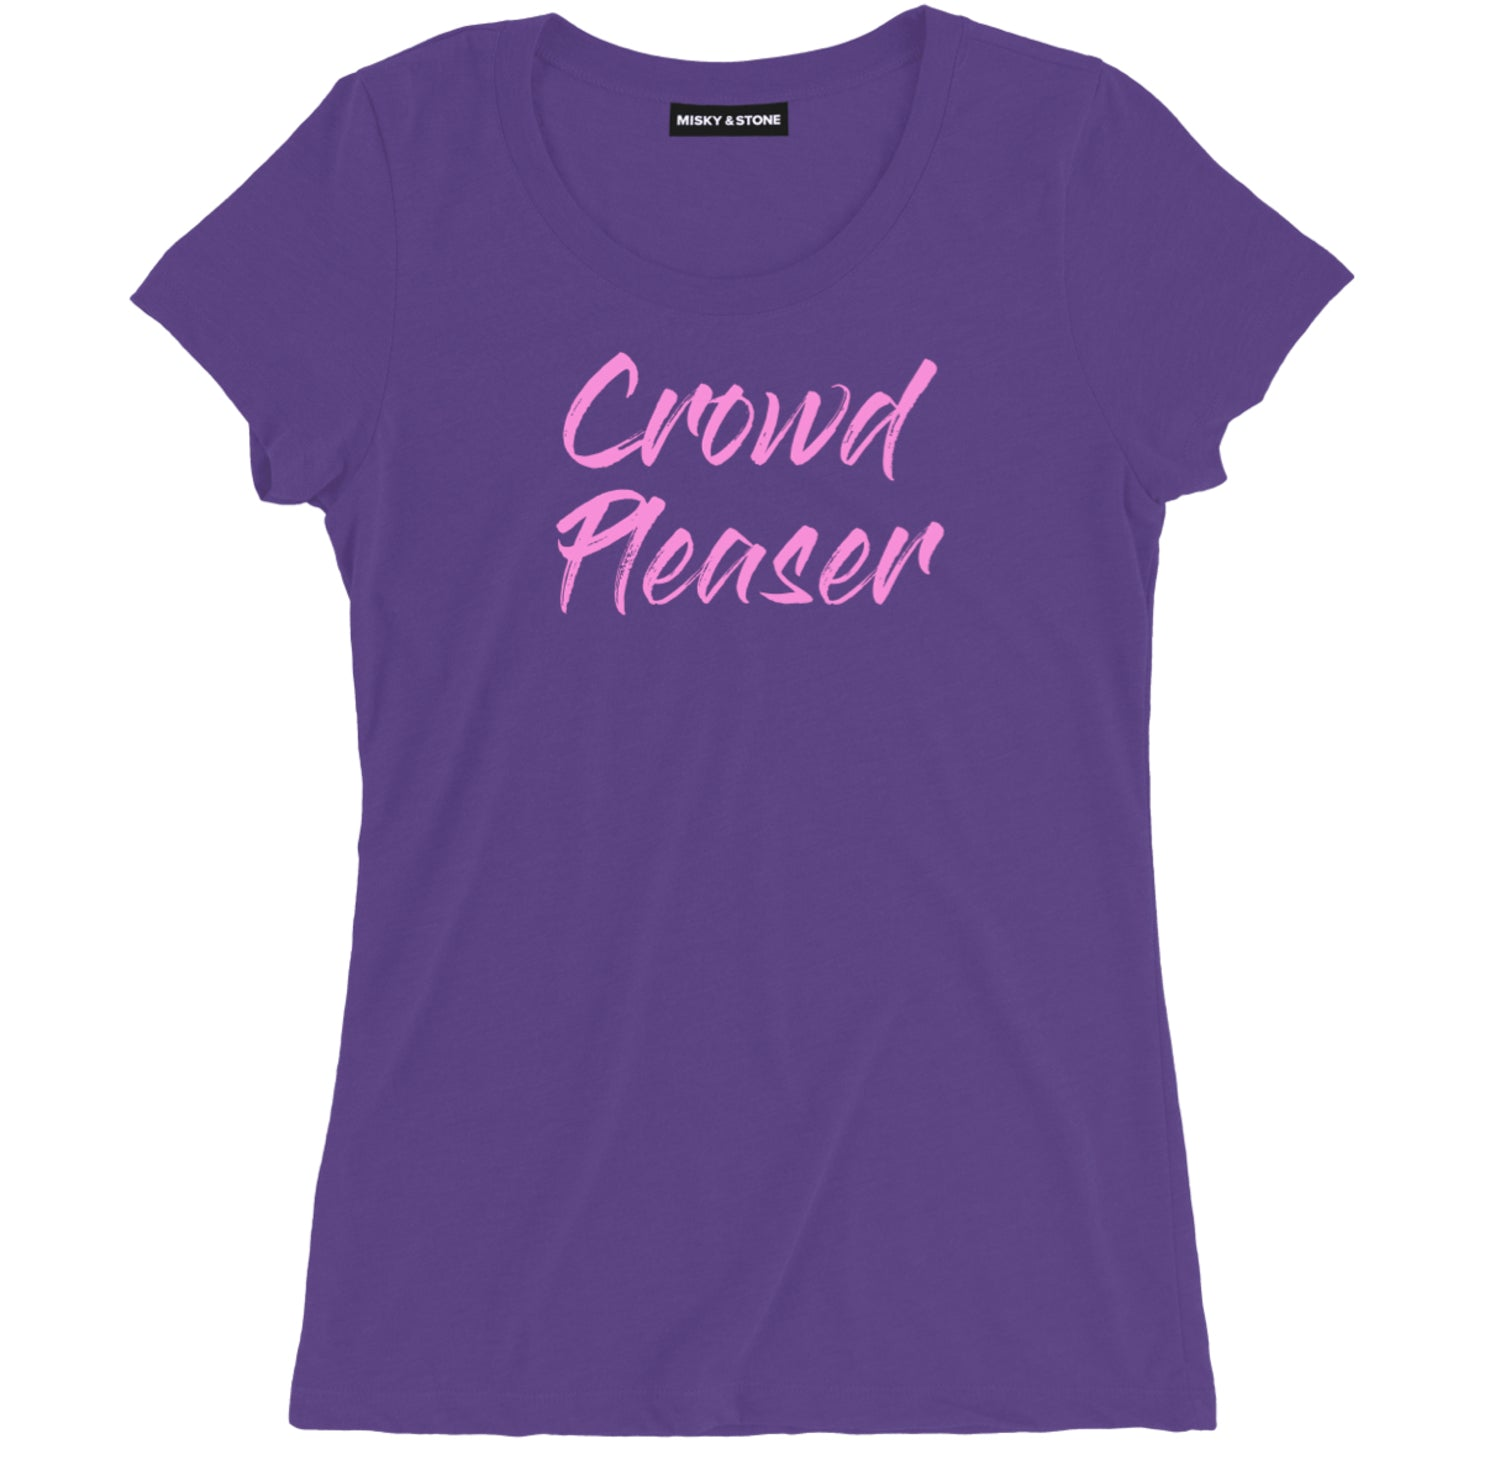 Crowd Pleaser Womens Hip Hop Tee Shirt